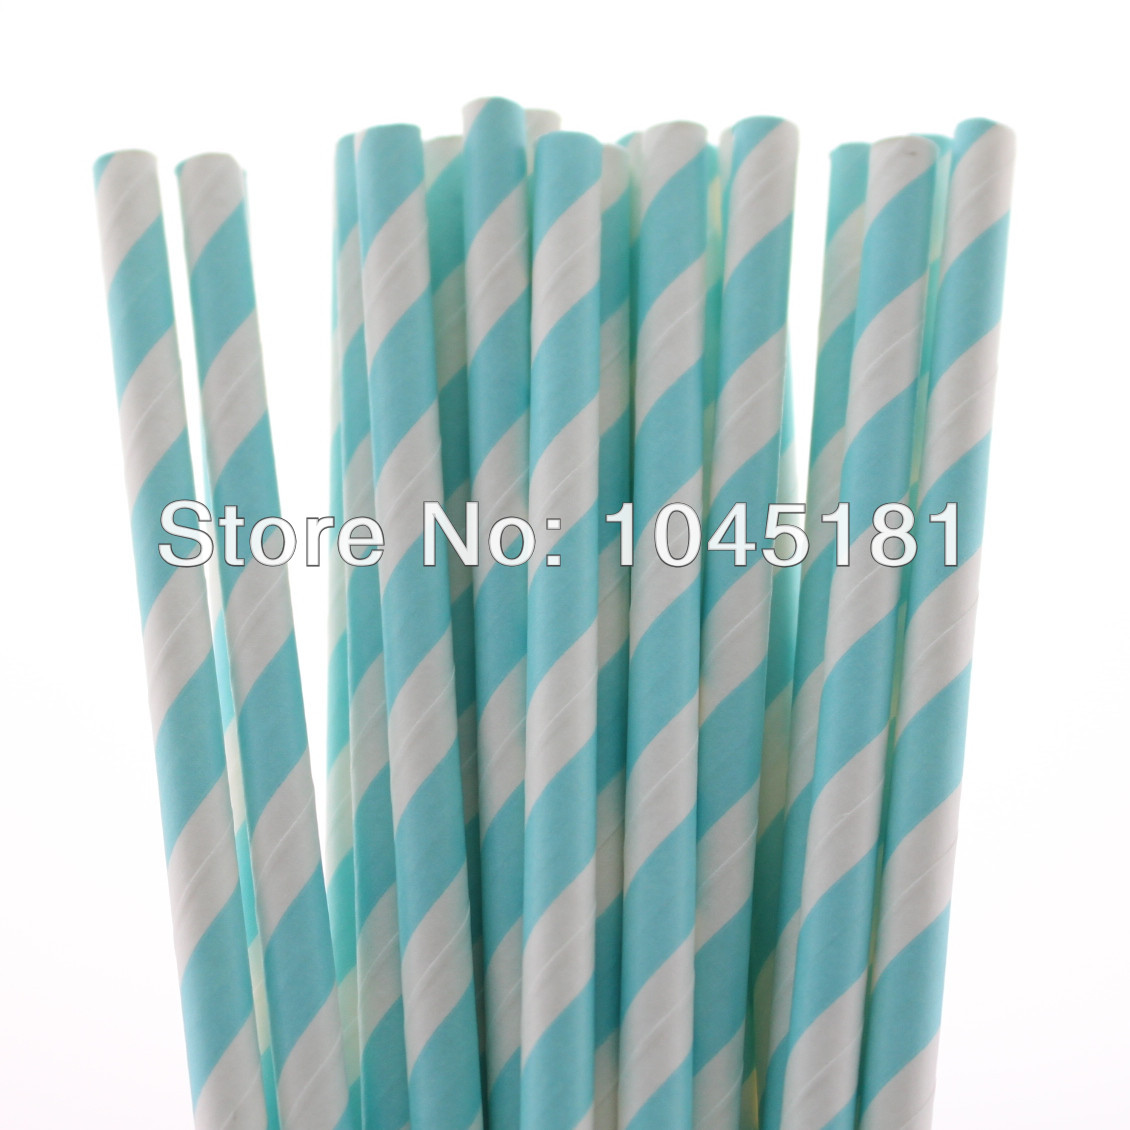 3000pcs Striped Design Paper Drinking Straws Baby Shower Wedding Decorative Event Supplies Disposable Party Straws(China (Mainland))